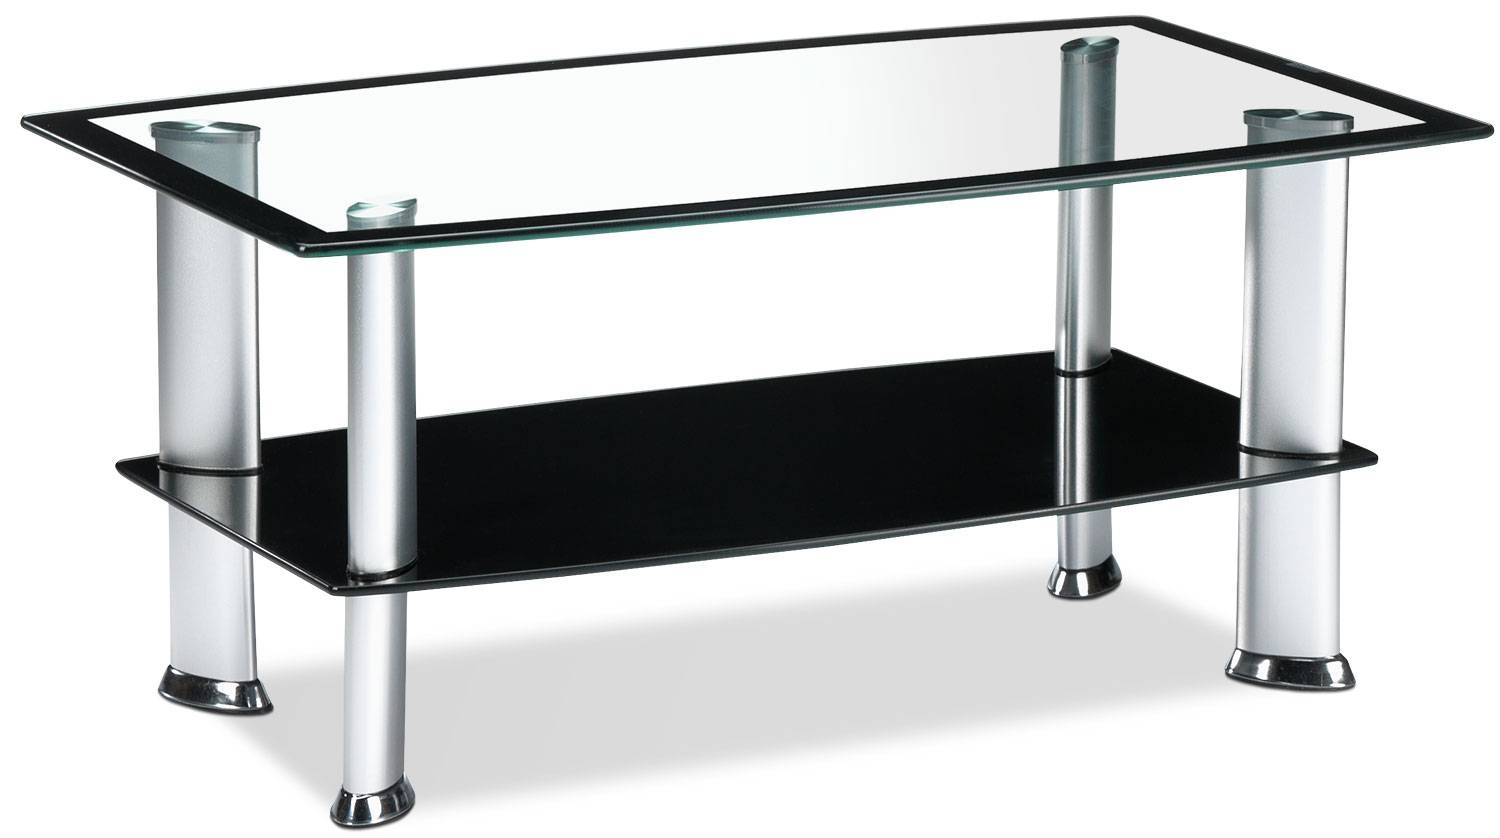 Coffee Tables | Leon's with regard to Elephant Coffee Tables With Glass Top (Image 16 of 30)